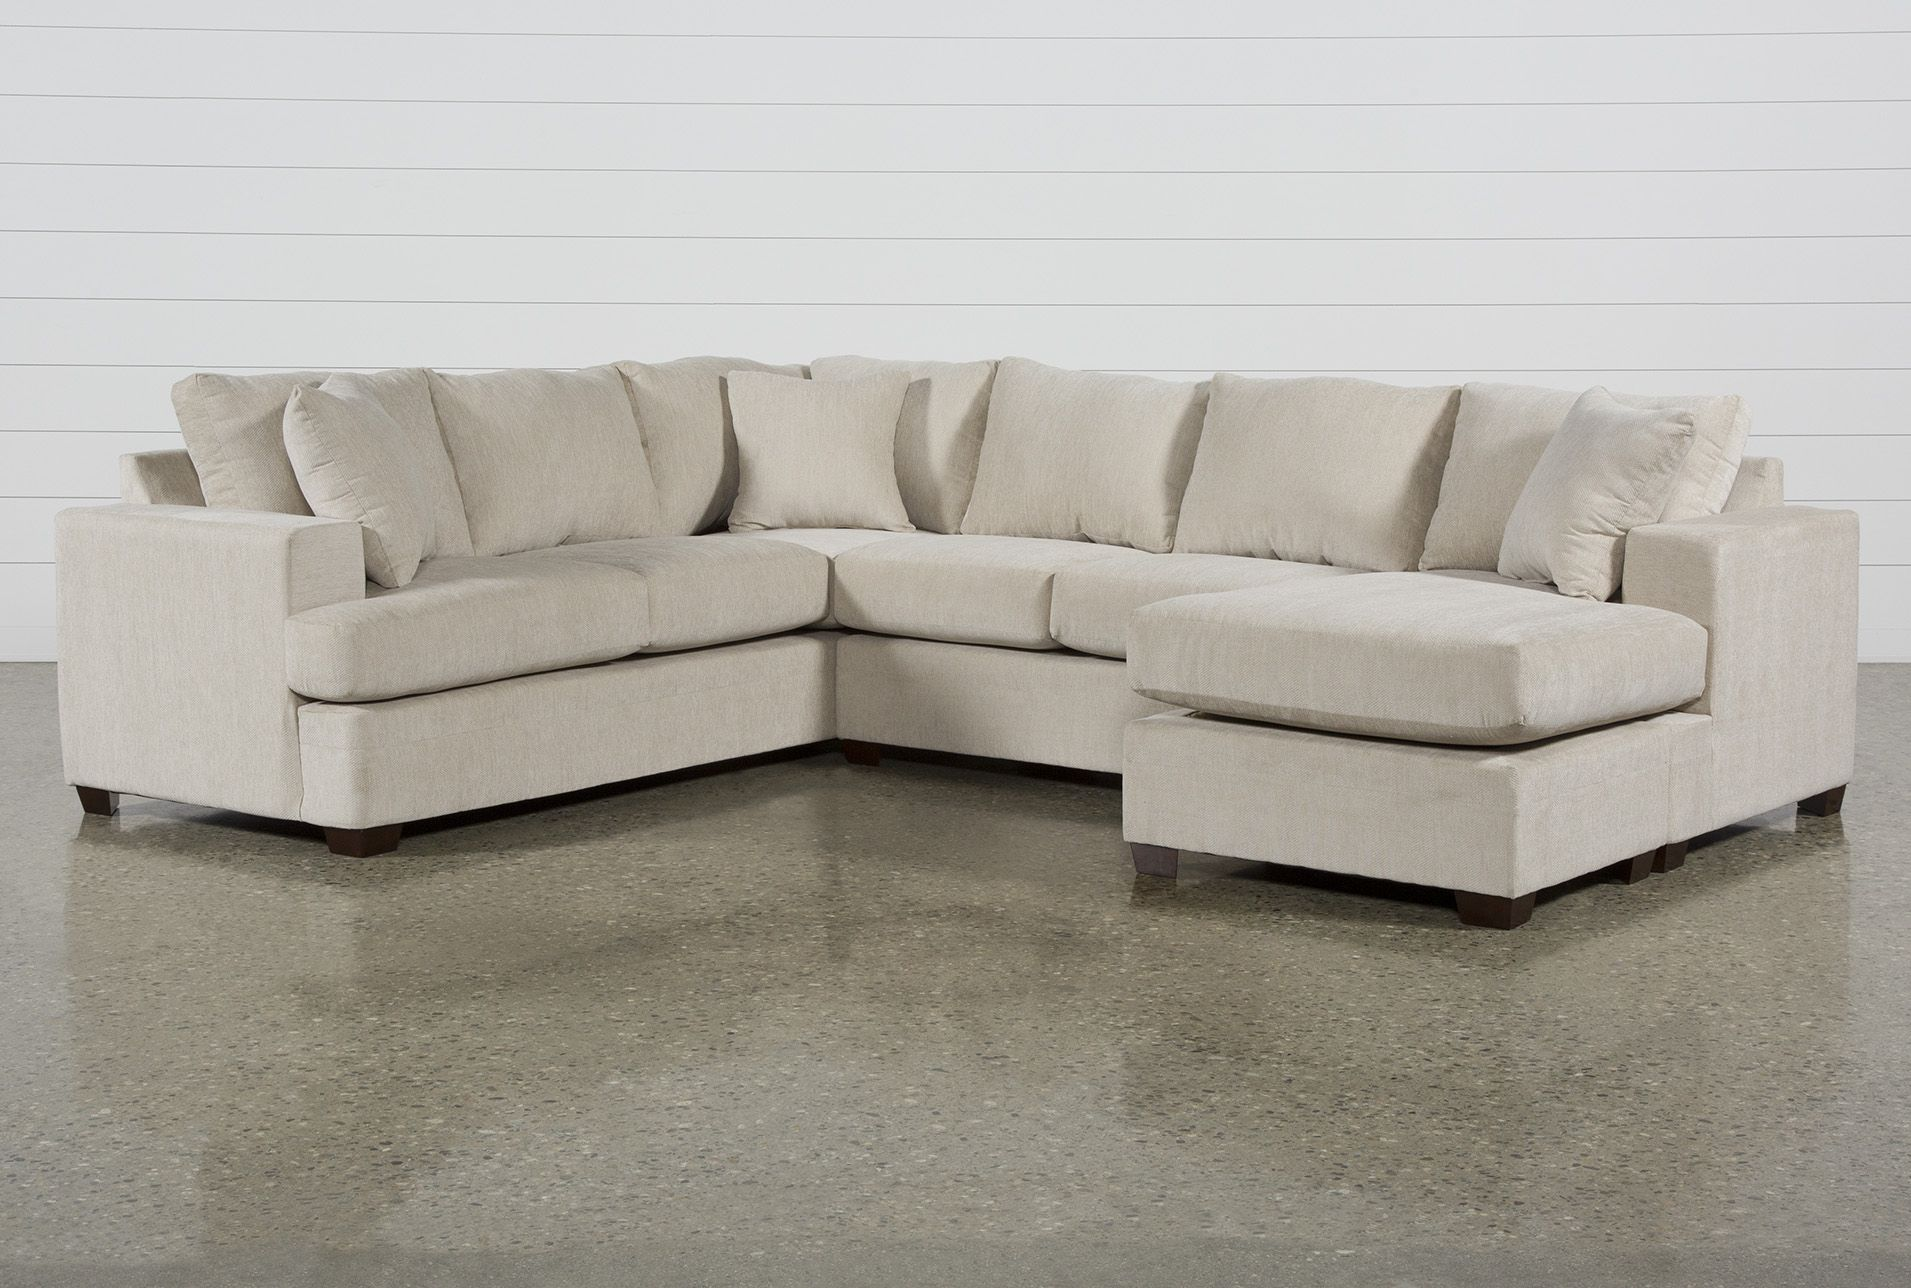 Kerri Sand 2 Piece Sectional With Raf Sofa Chaise Facing Sofas Chaise Sofa Living Spaces Furniture 2 piece sectional sofa with chaise